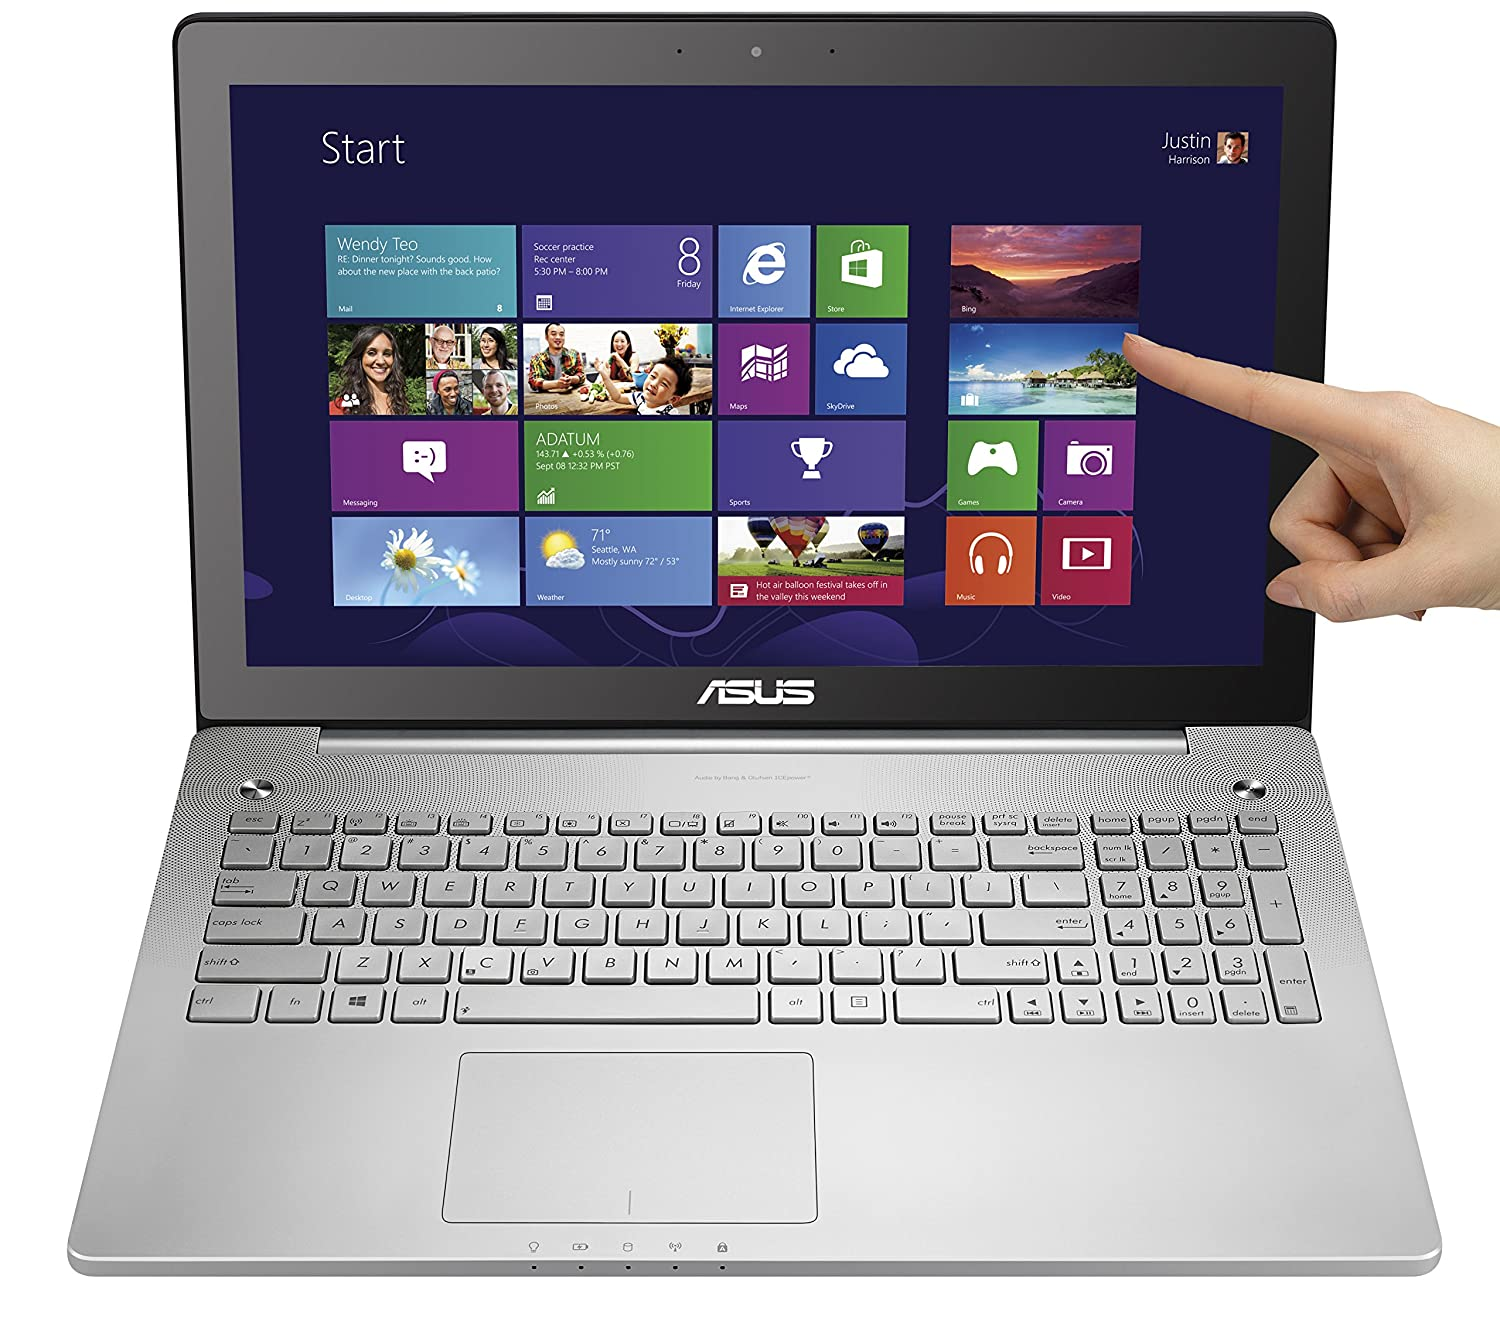 ASUS-N550JK-DS71T-16-Inch-Touchscreen-Laptop-2-4GHz-Intel-Core-i7-4700HQ-8GB-RAM-and-1TB-HD-Windows-8-Silver-Grey